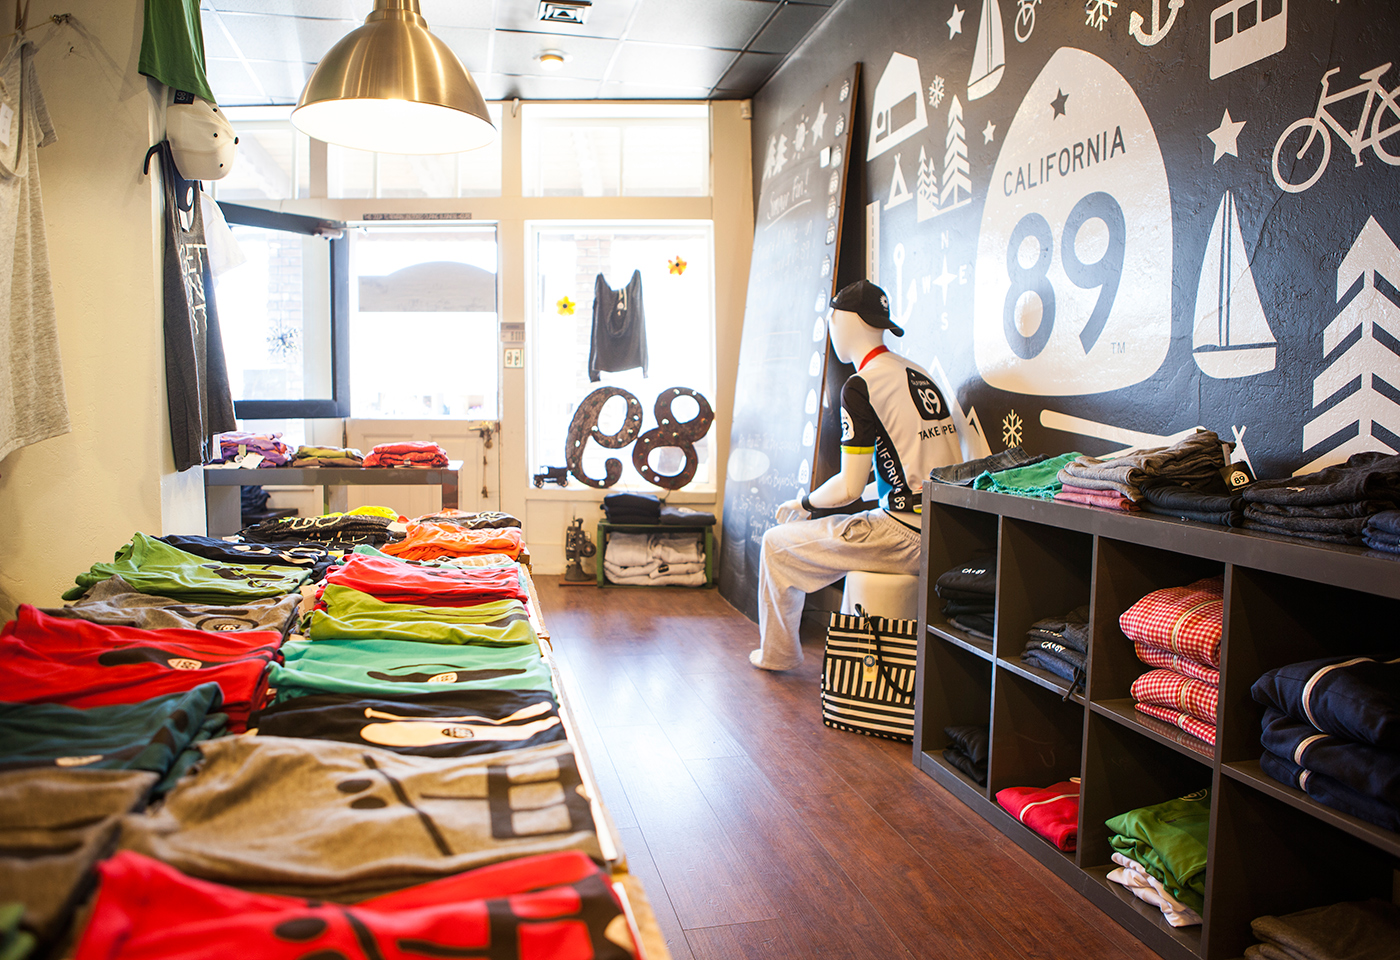 California 89 Interior with Apparel and Wall Graphic